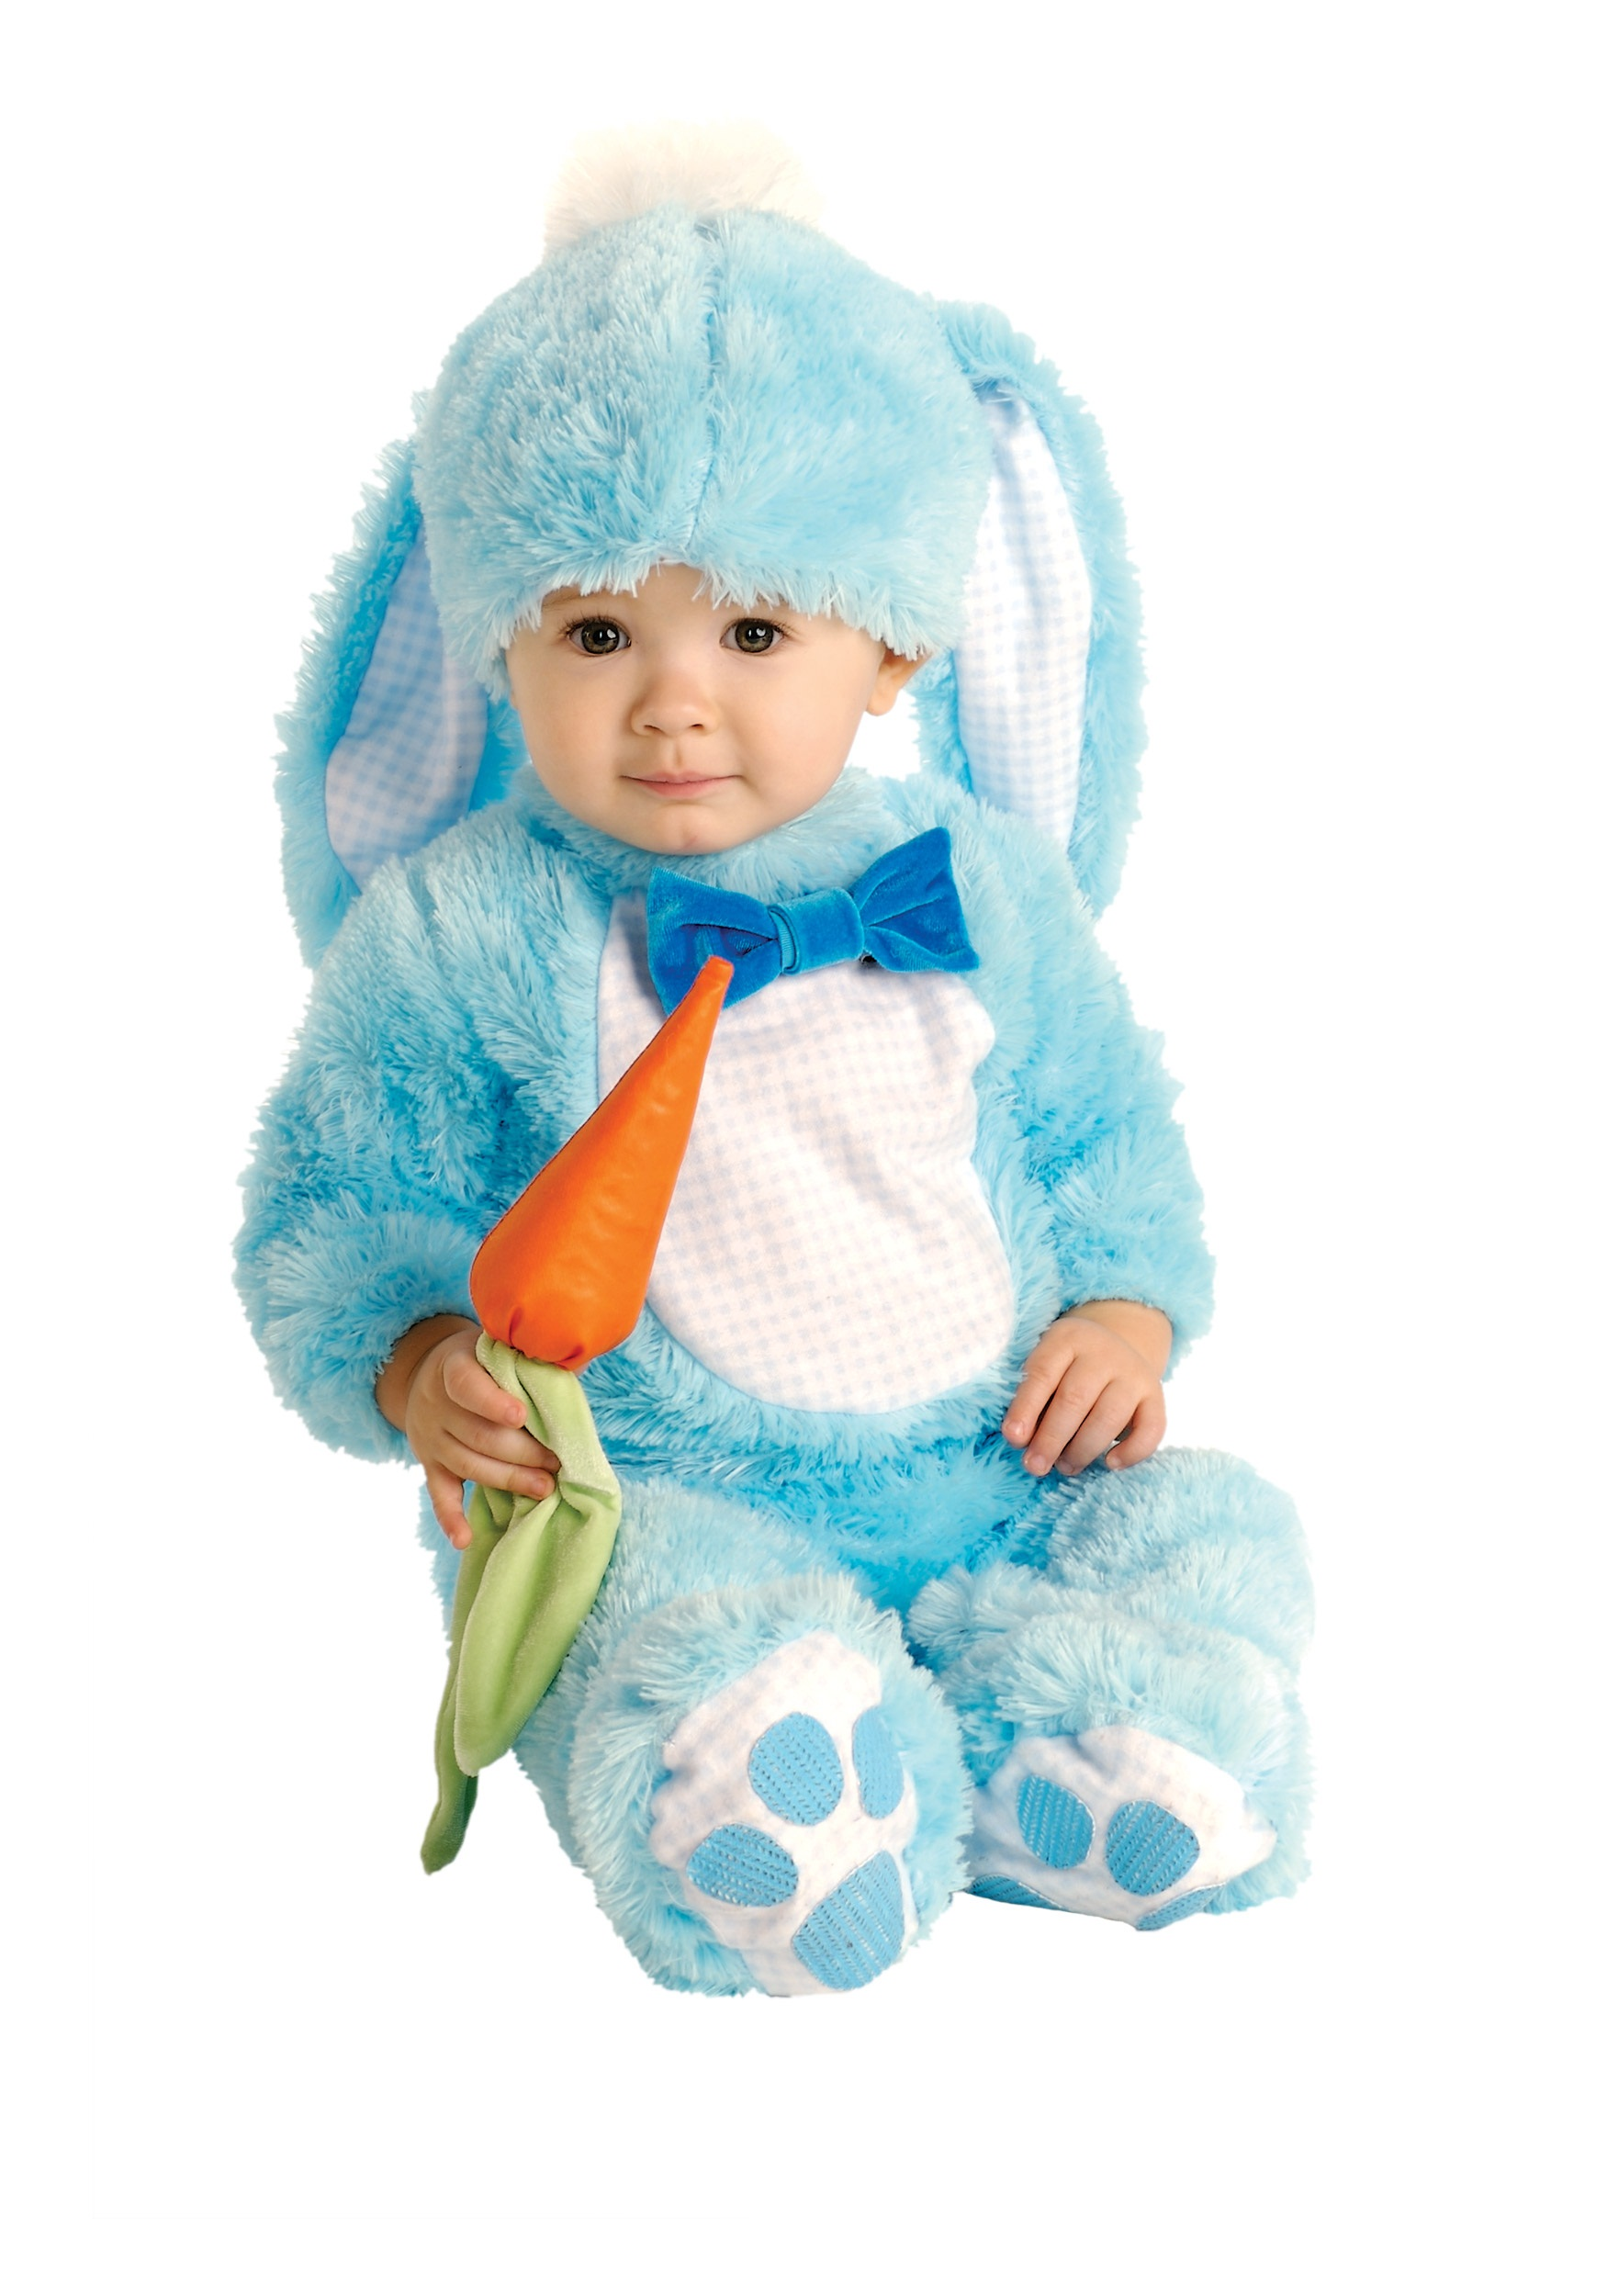 Infant Blue Bunny Costume - Baby Rabbit Costumes for Easter 88c61120cbc8